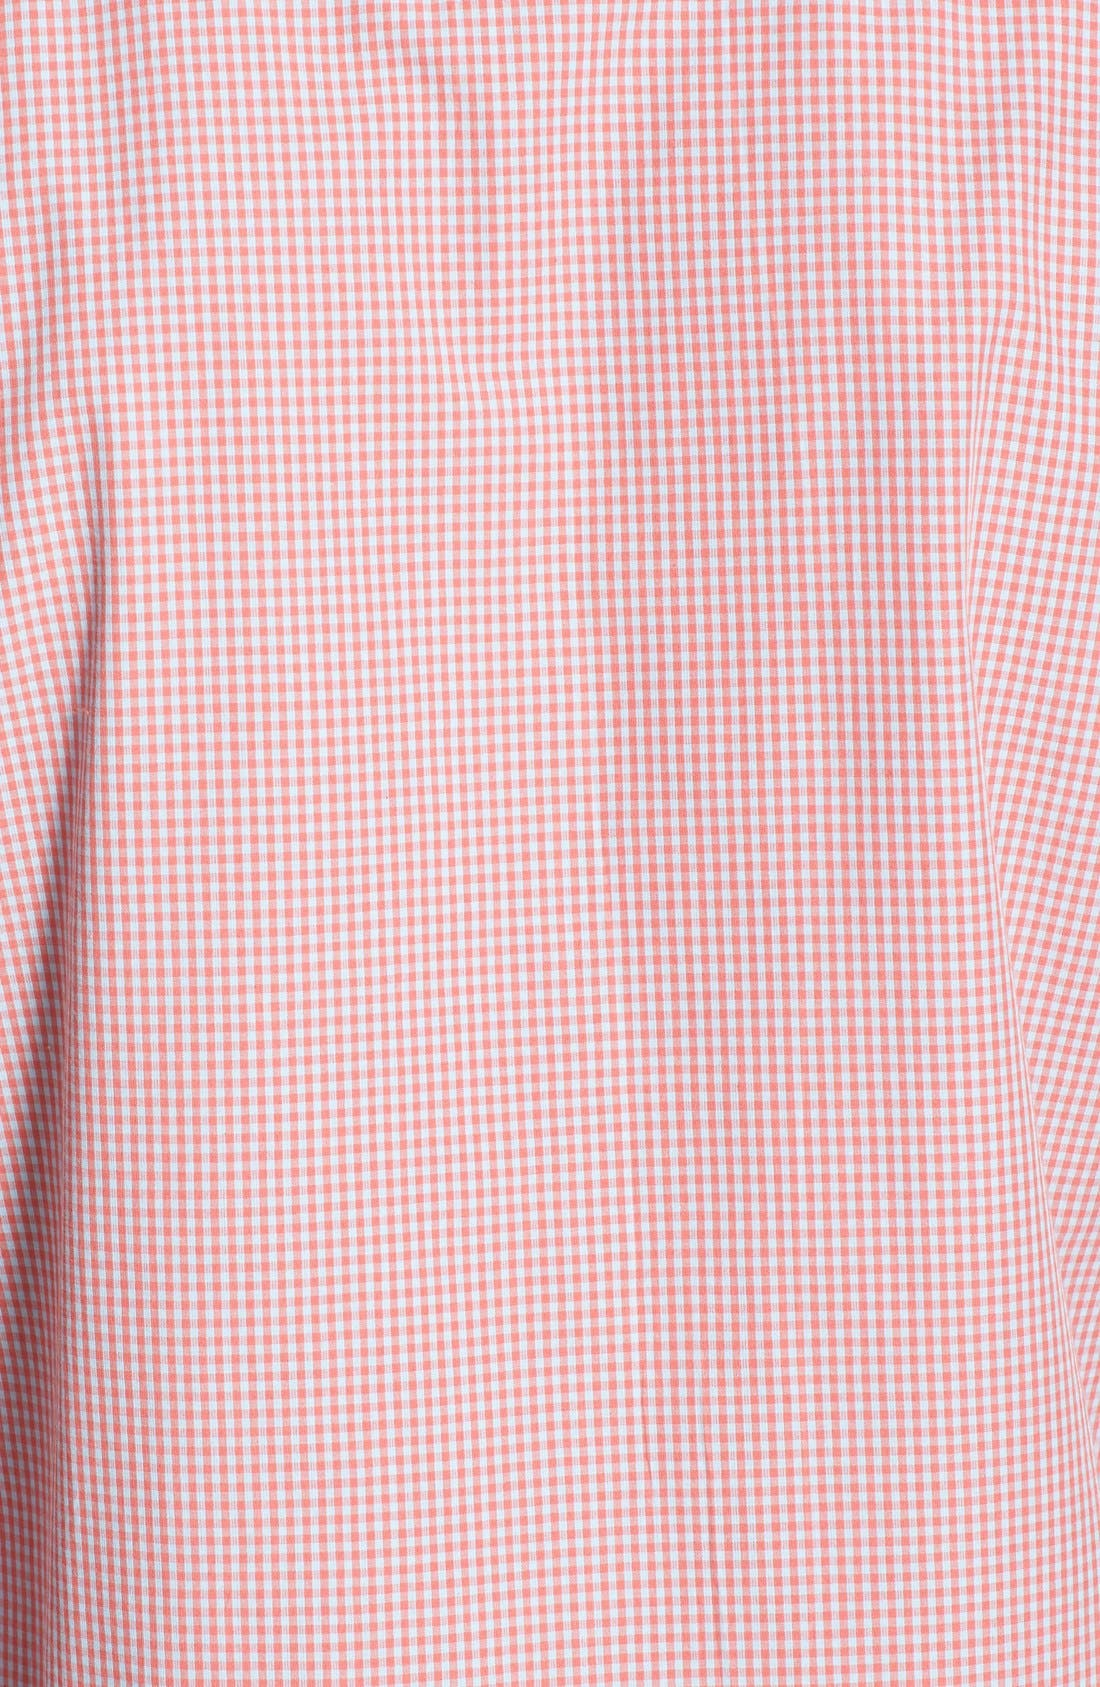 Alternate Image 3  - French Connection Slim Fit Gingham Sport Shirt